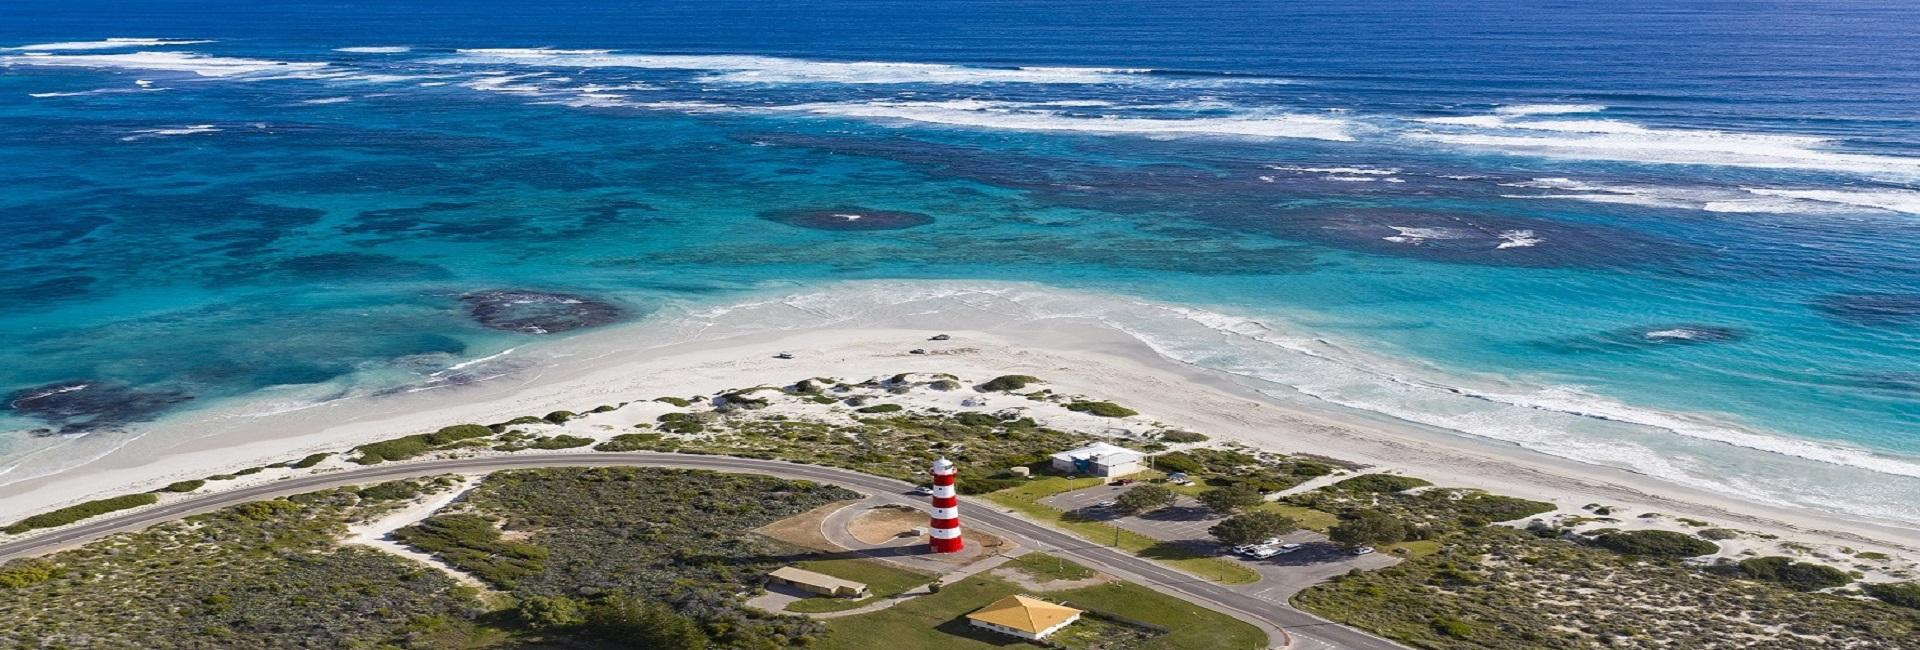 Aerial view over Point Moore Lighthouse, Geraldton, Western Australia